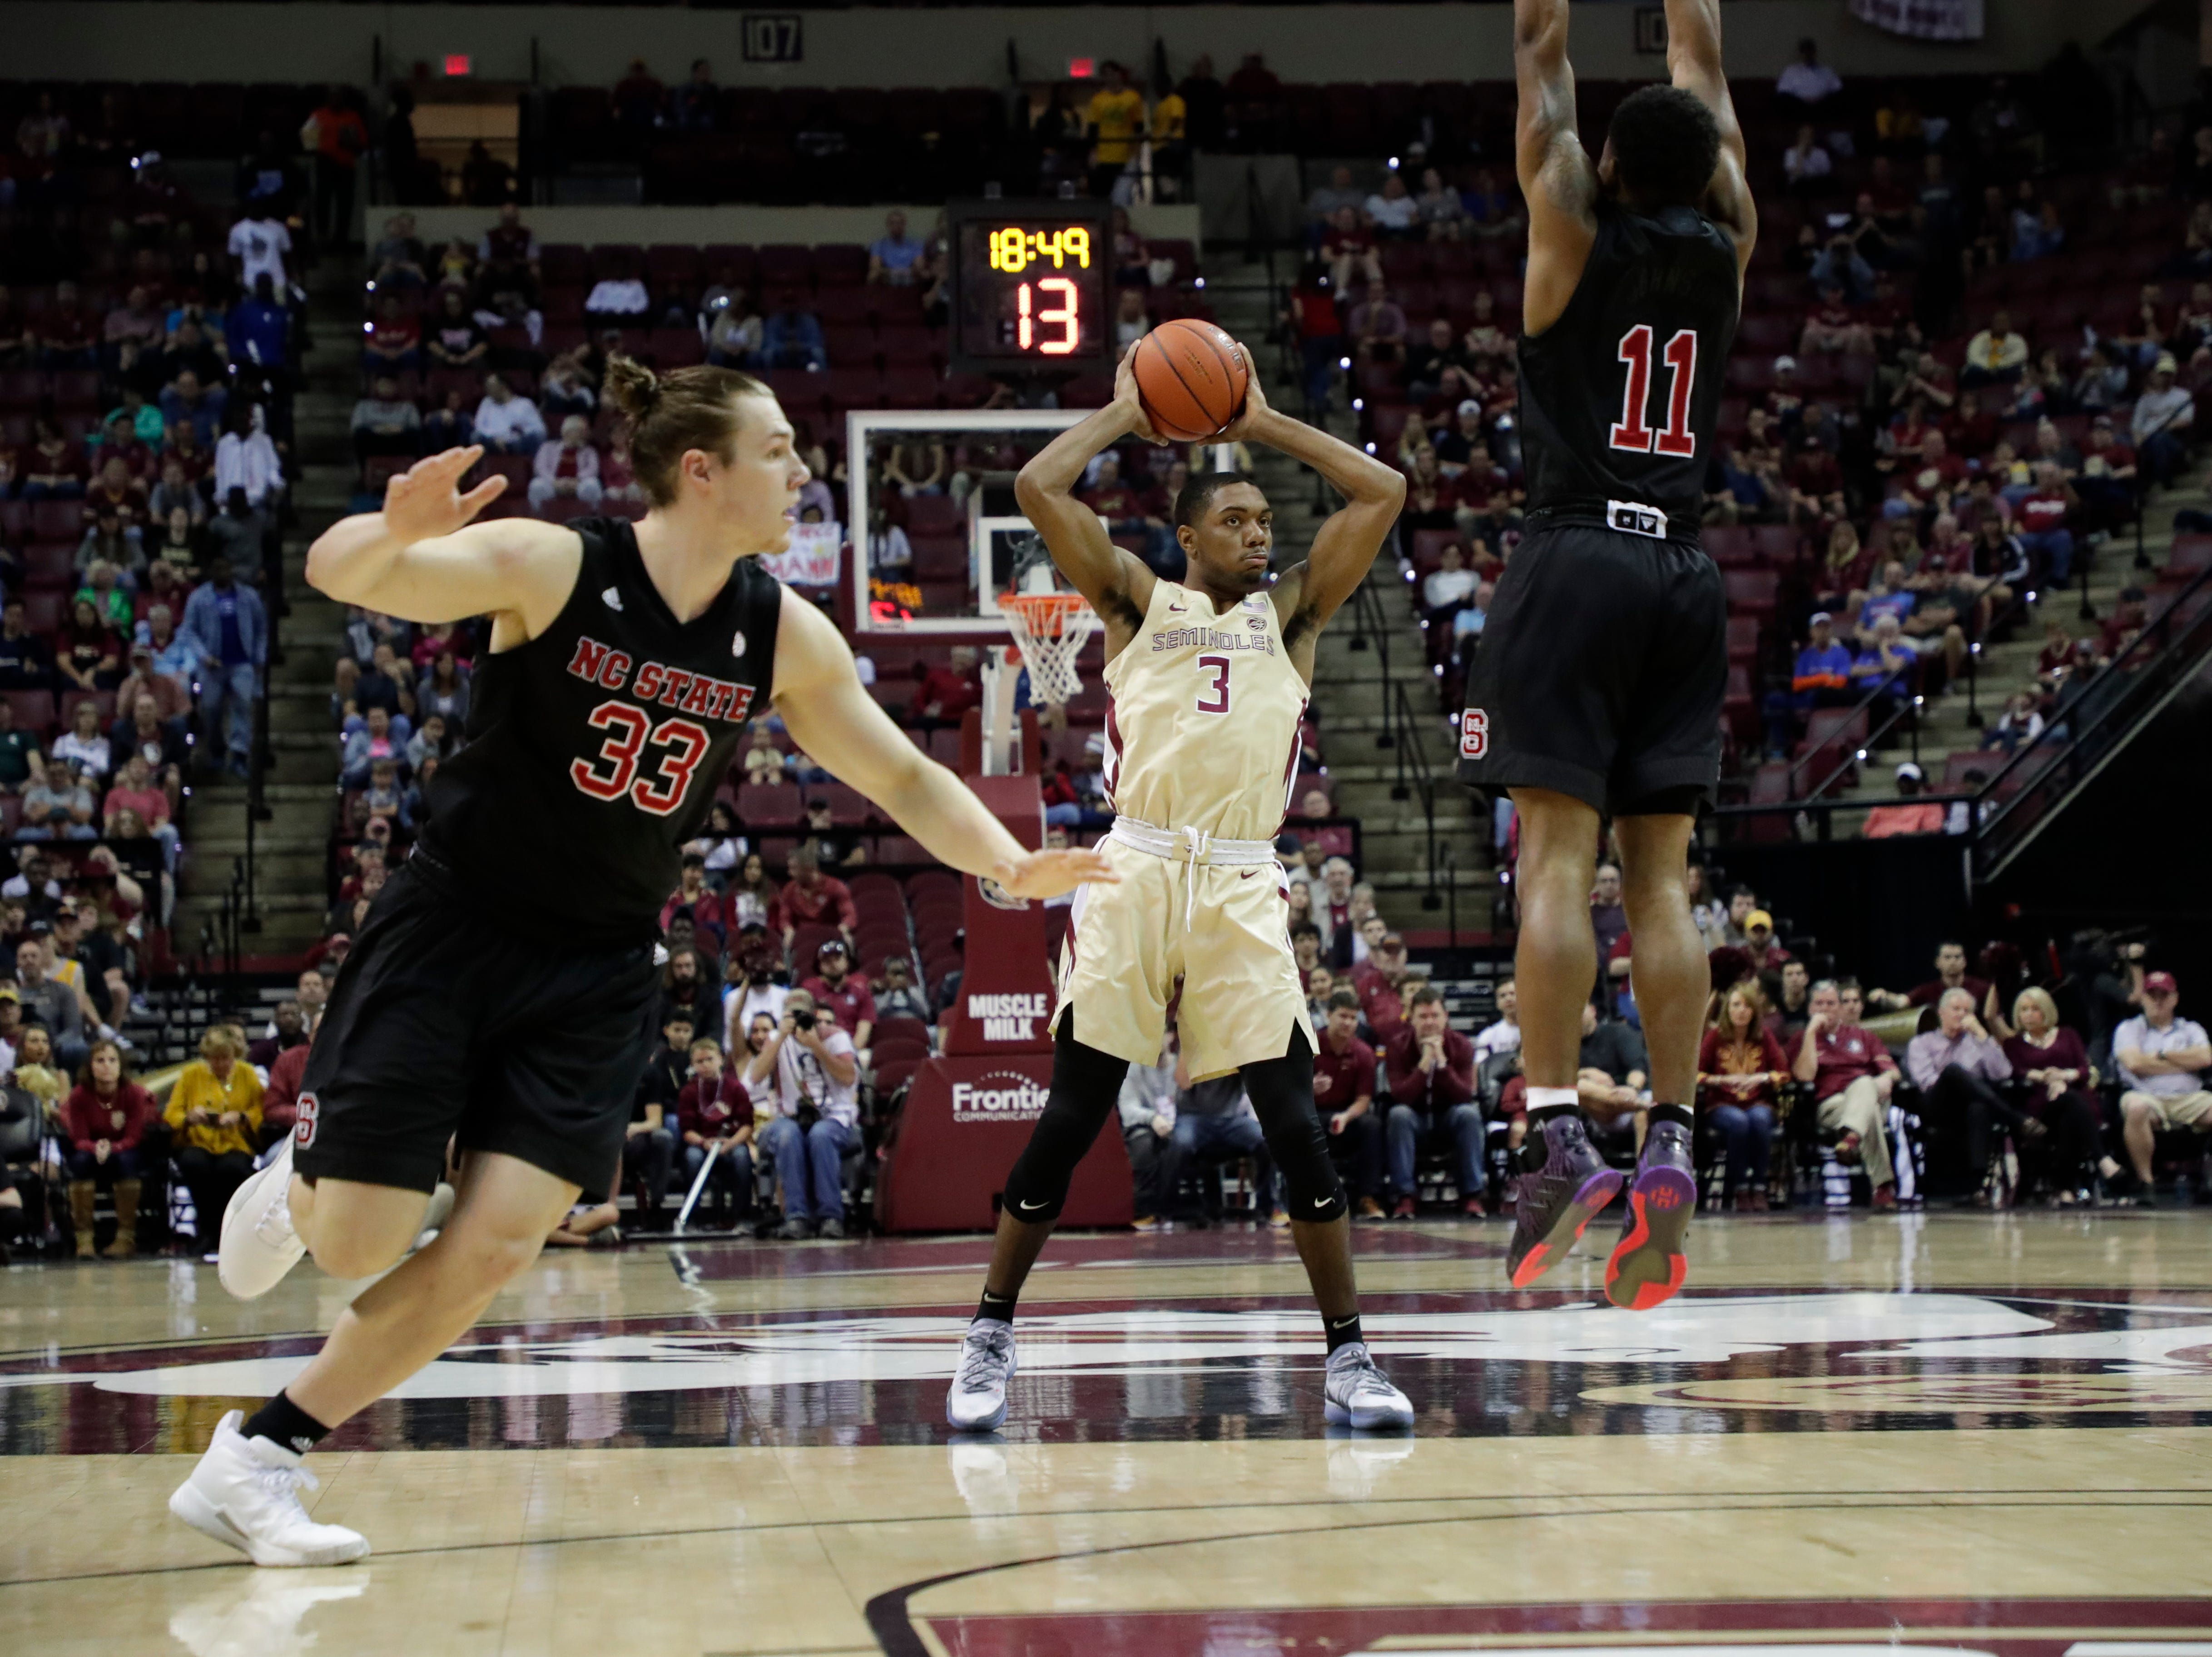 Florida State Seminoles guard Trent Forrest (3) looks to pass to a teammate. The Florida State Seminoles host the NC State Wolfpack at the Tucker Civic Center Saturday, March 2, 2019.